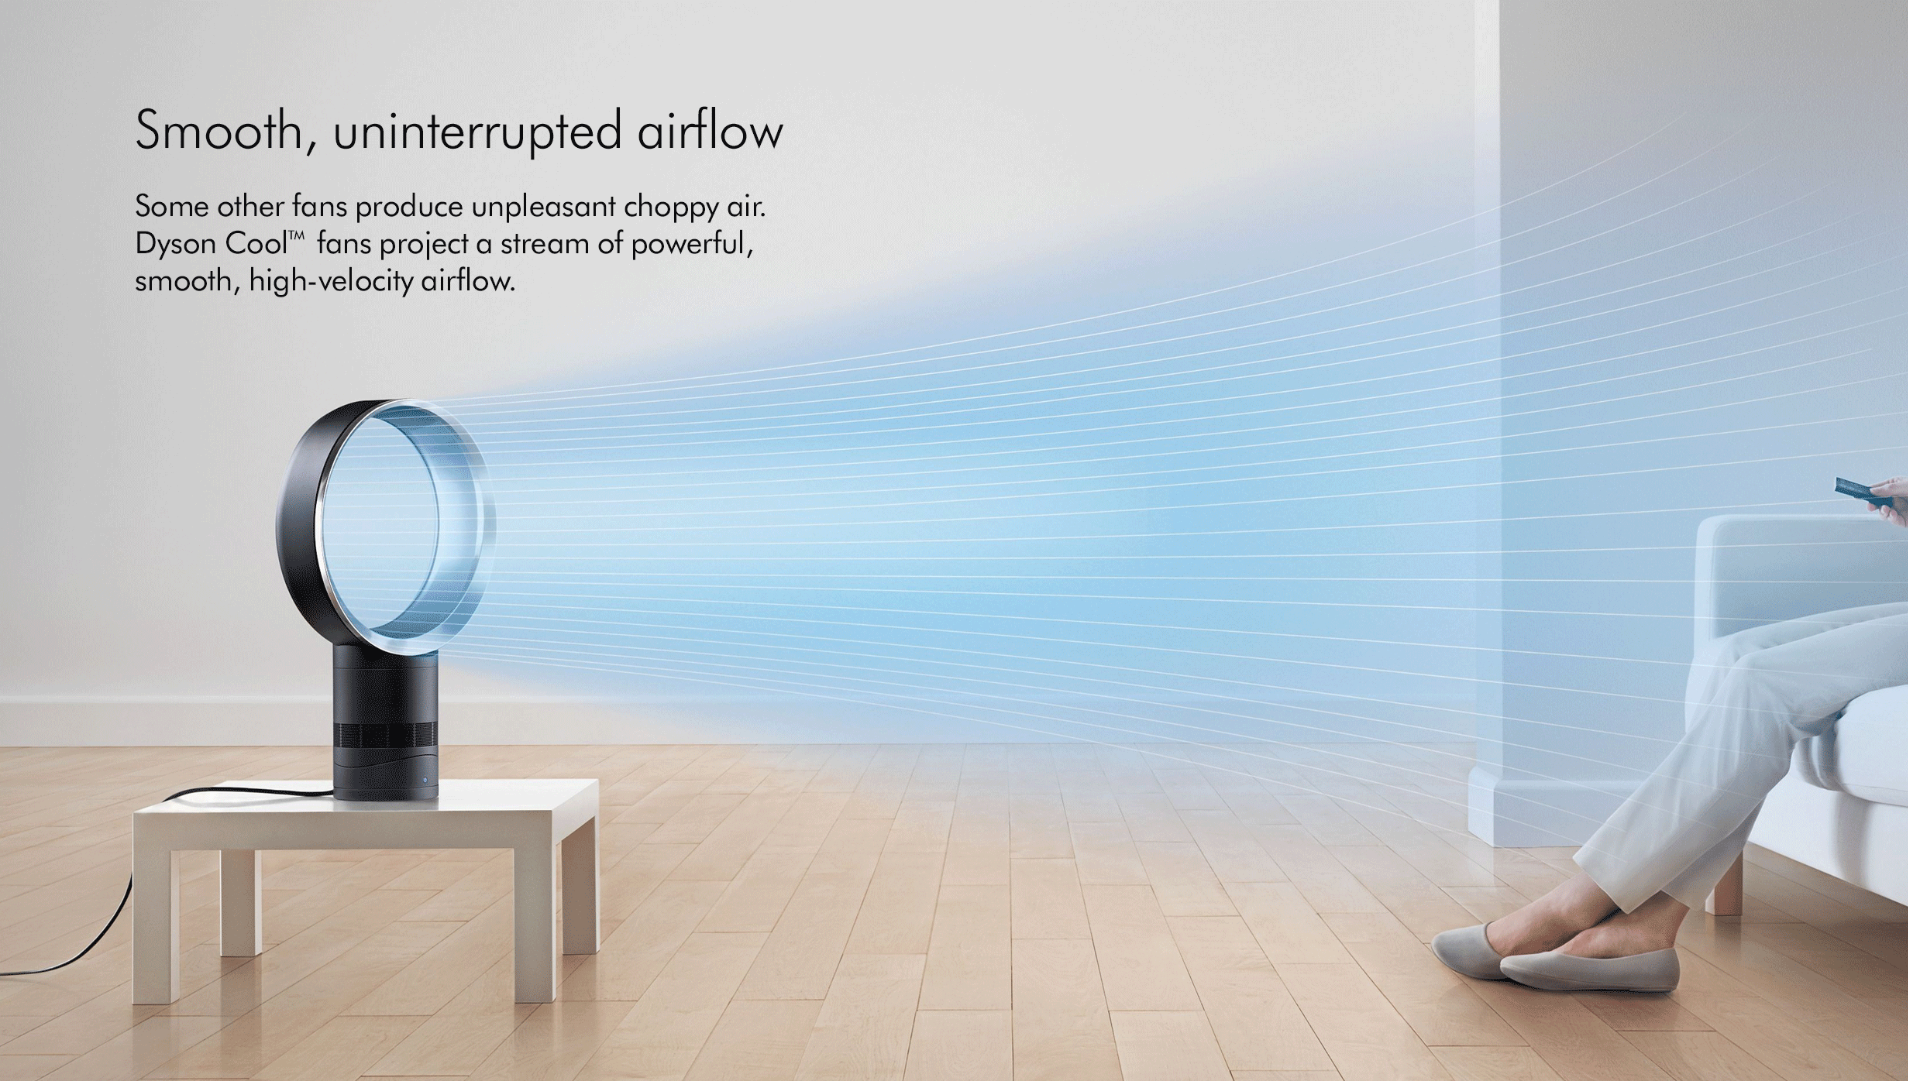 Dyson Am06 smooth uninterrupted airflow